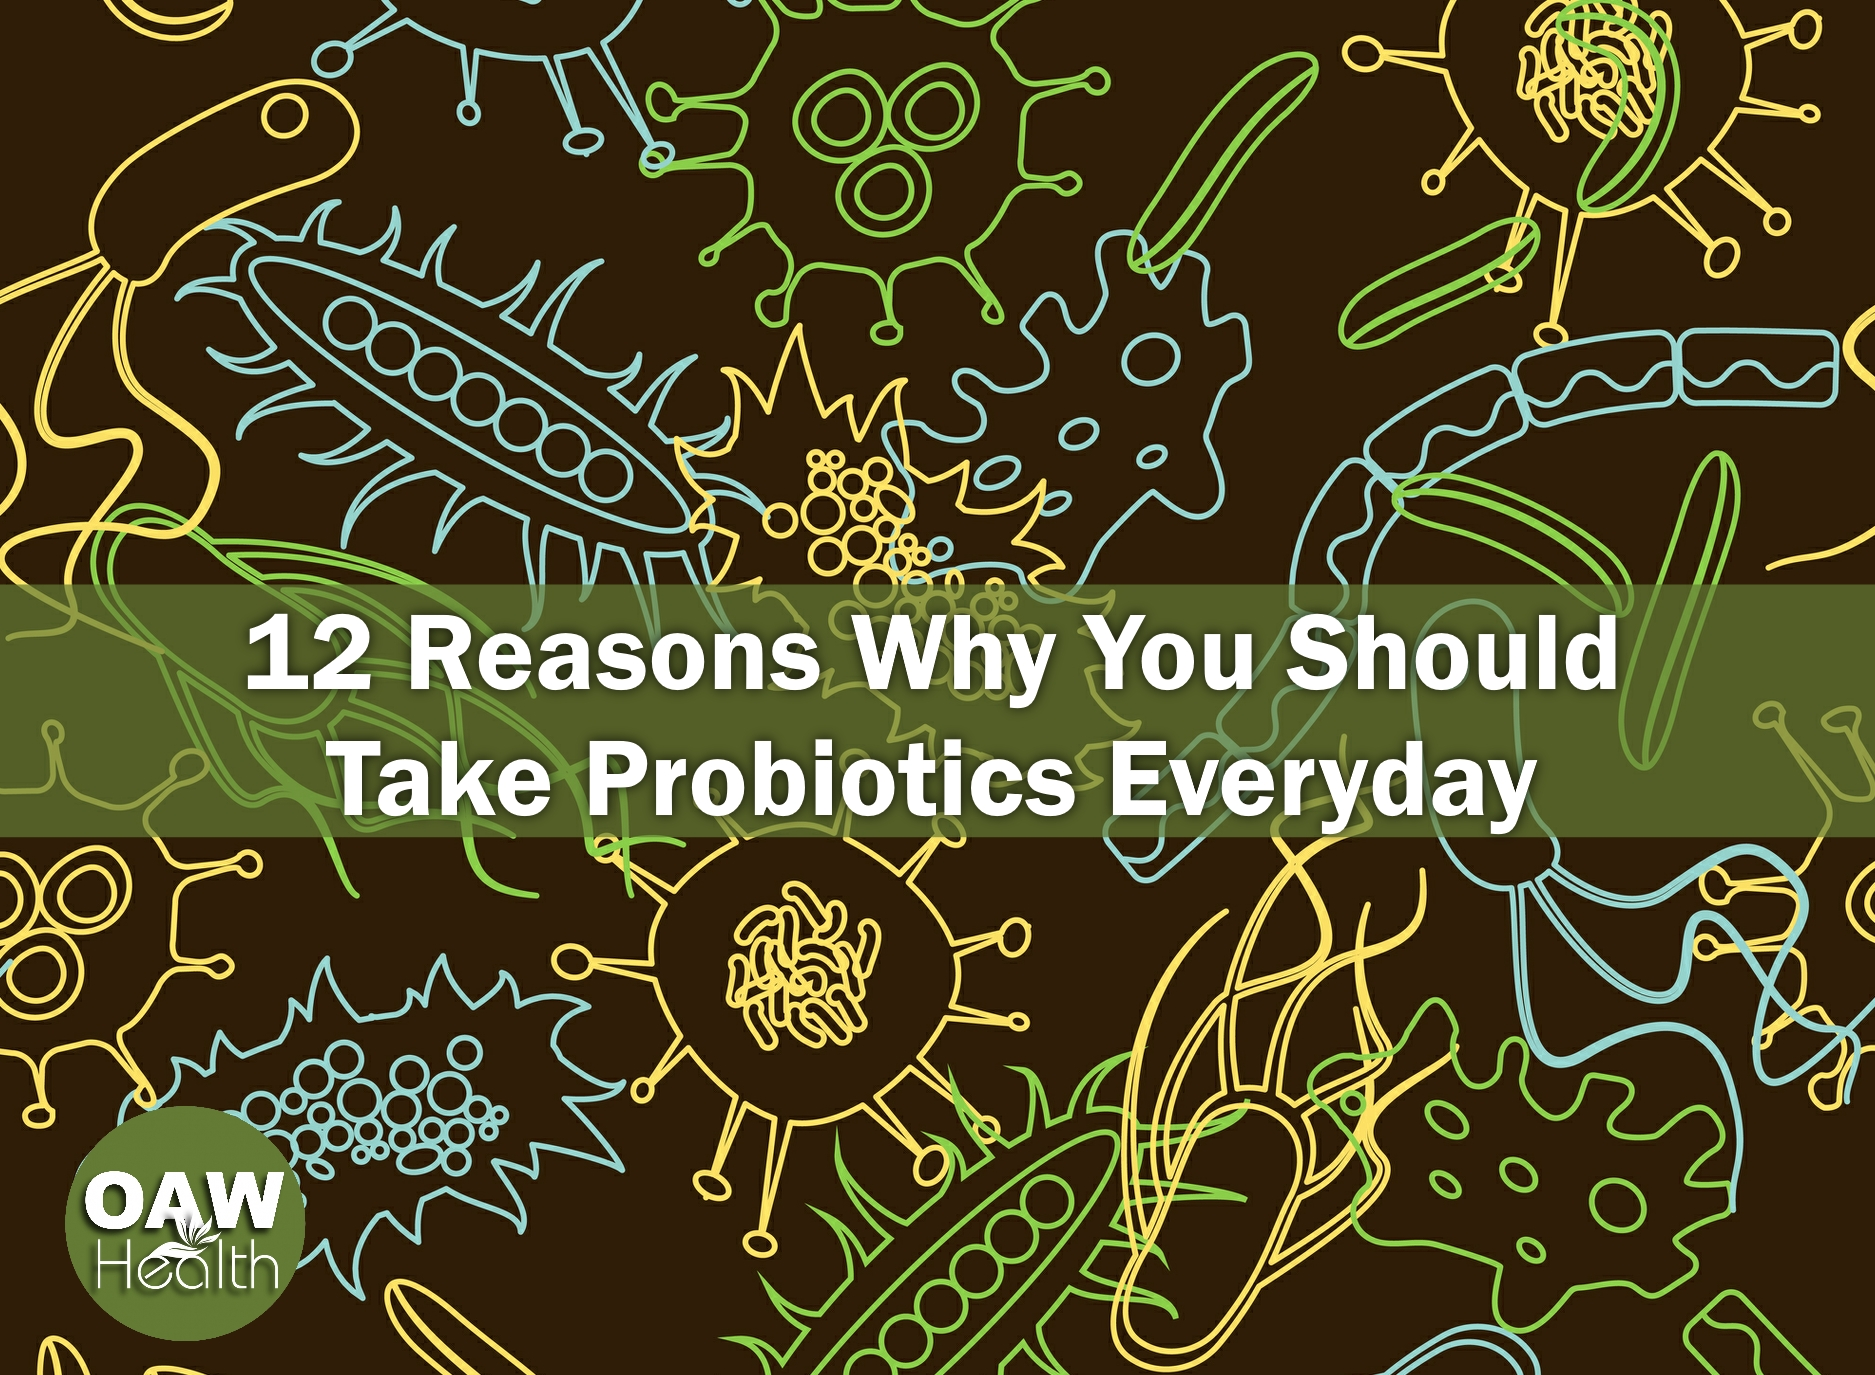 12 Reasons Why You Should Take Probiotics Everyday